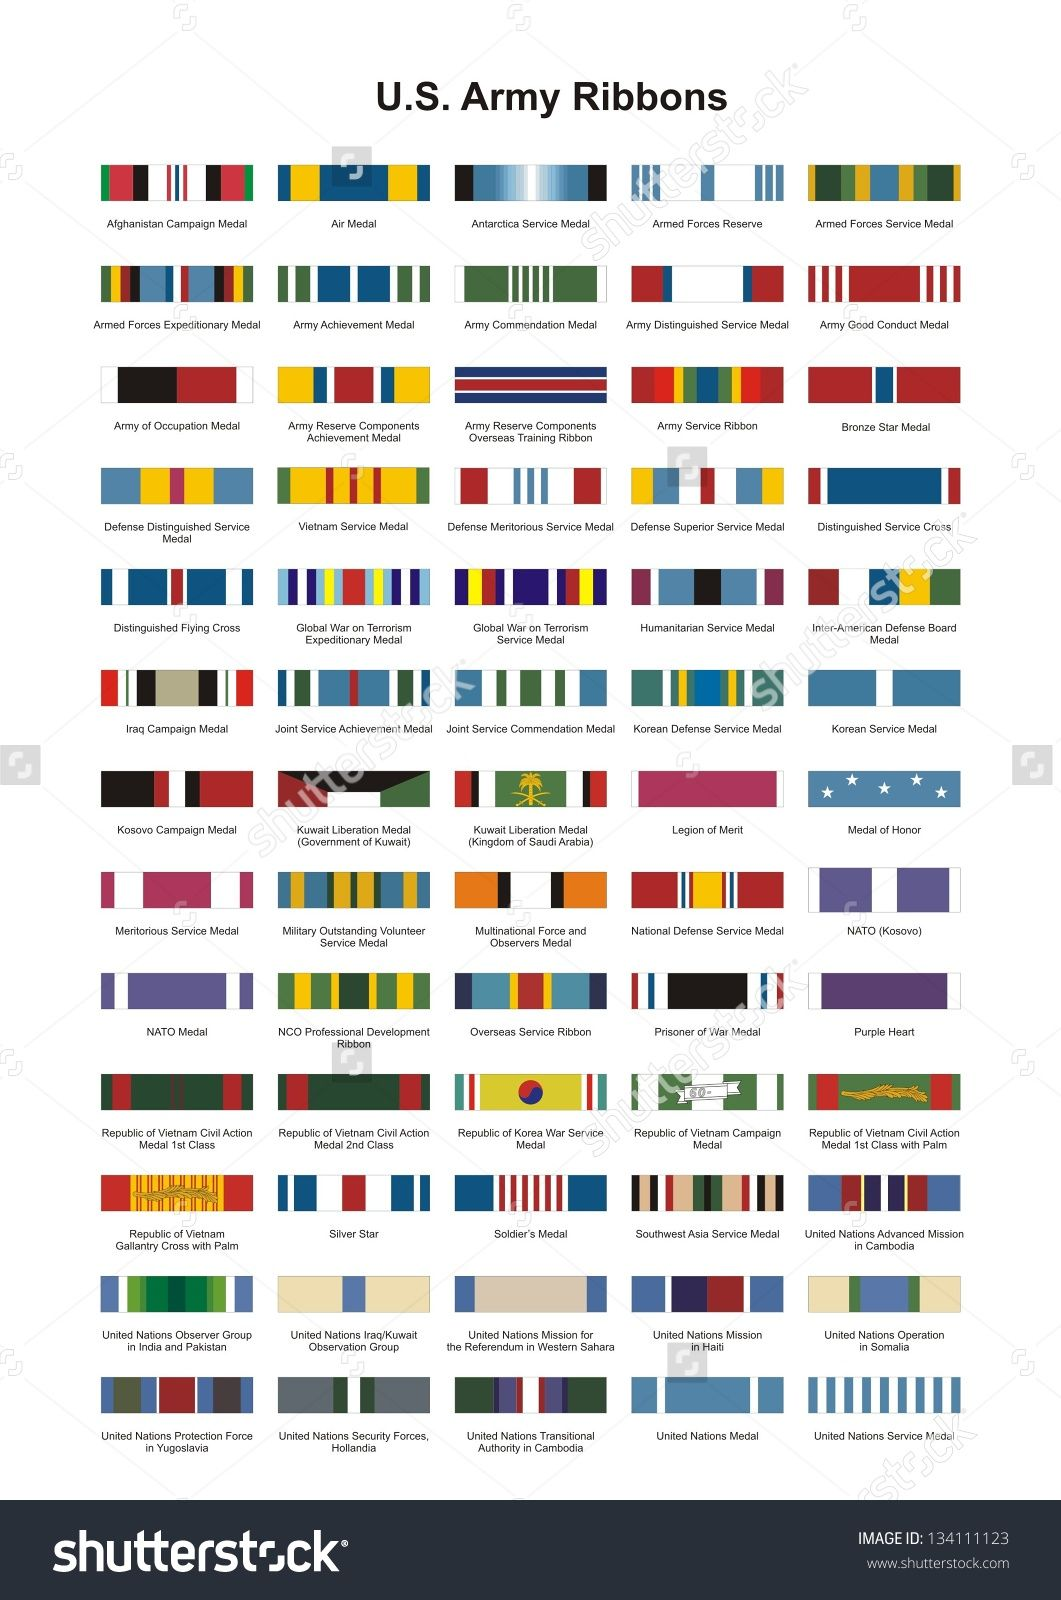 US Army Ribbons Army ribbons, Military medals, Army